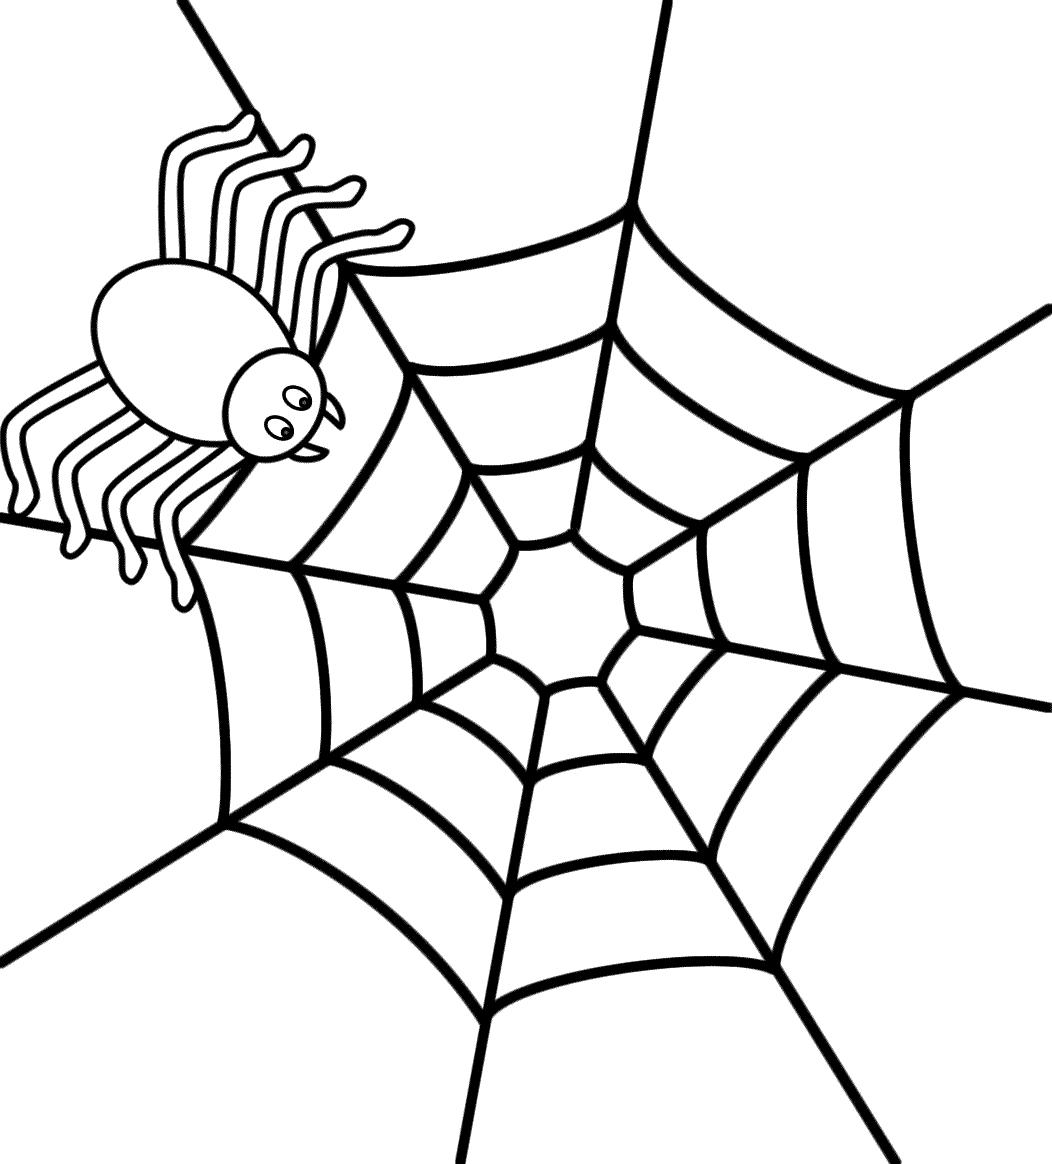 Black And White Spider Coloring Page